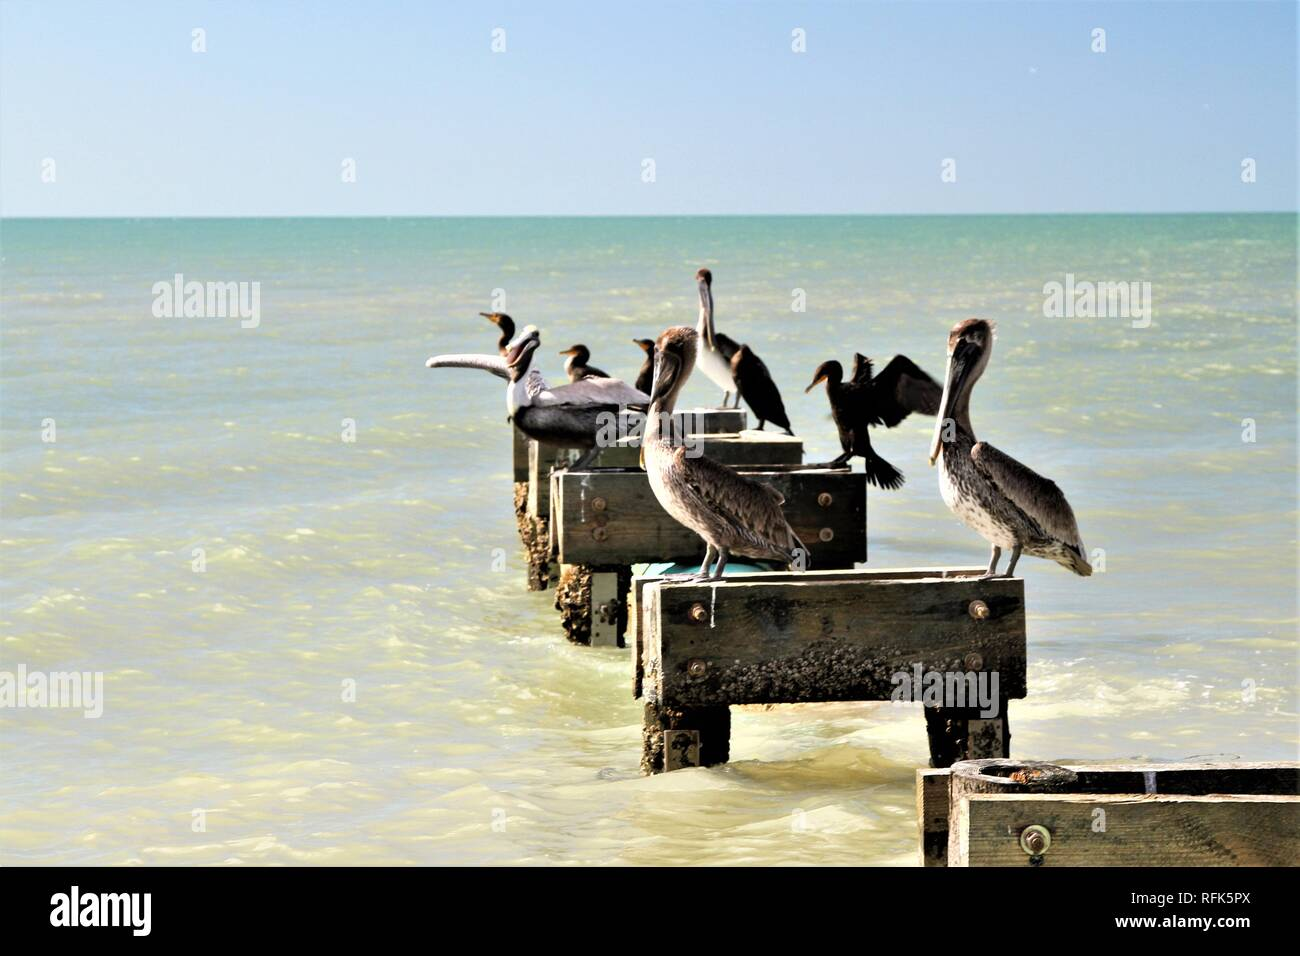 Pelicans and birds sitting on wood perches on the ocean - Stock Image